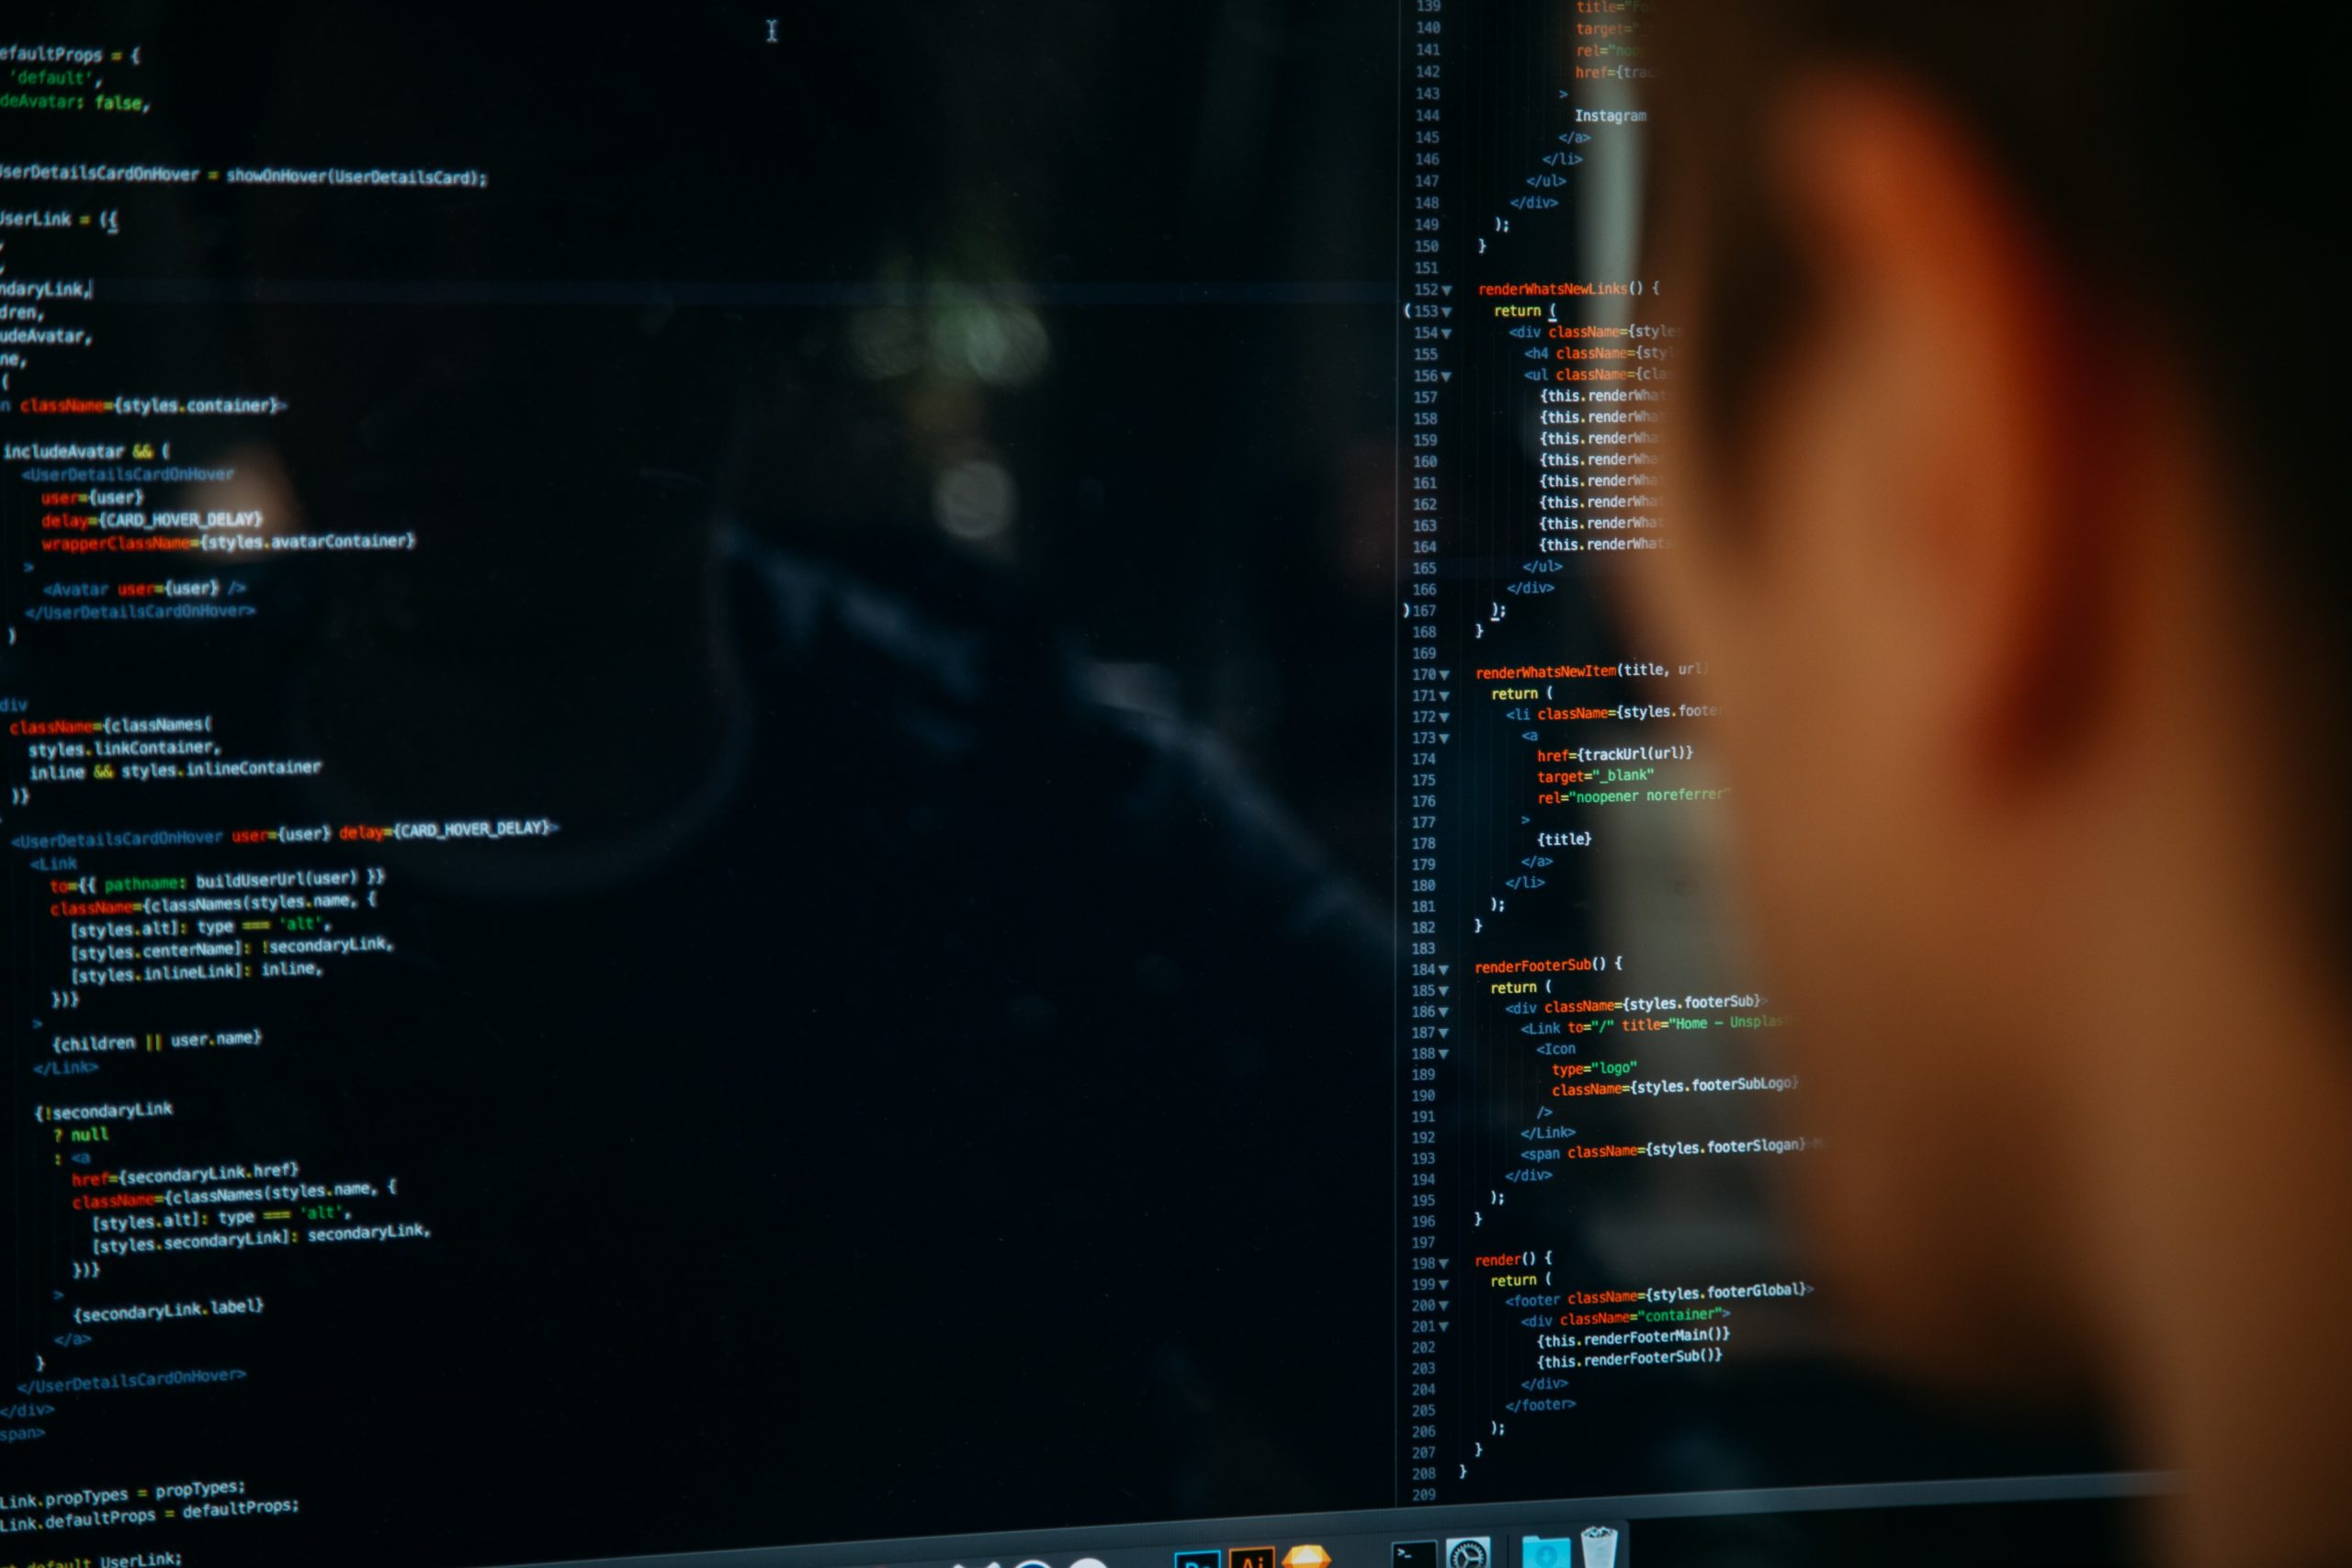 Man staring at code on a screen. Photo by Charles Deluvio on Unsplash